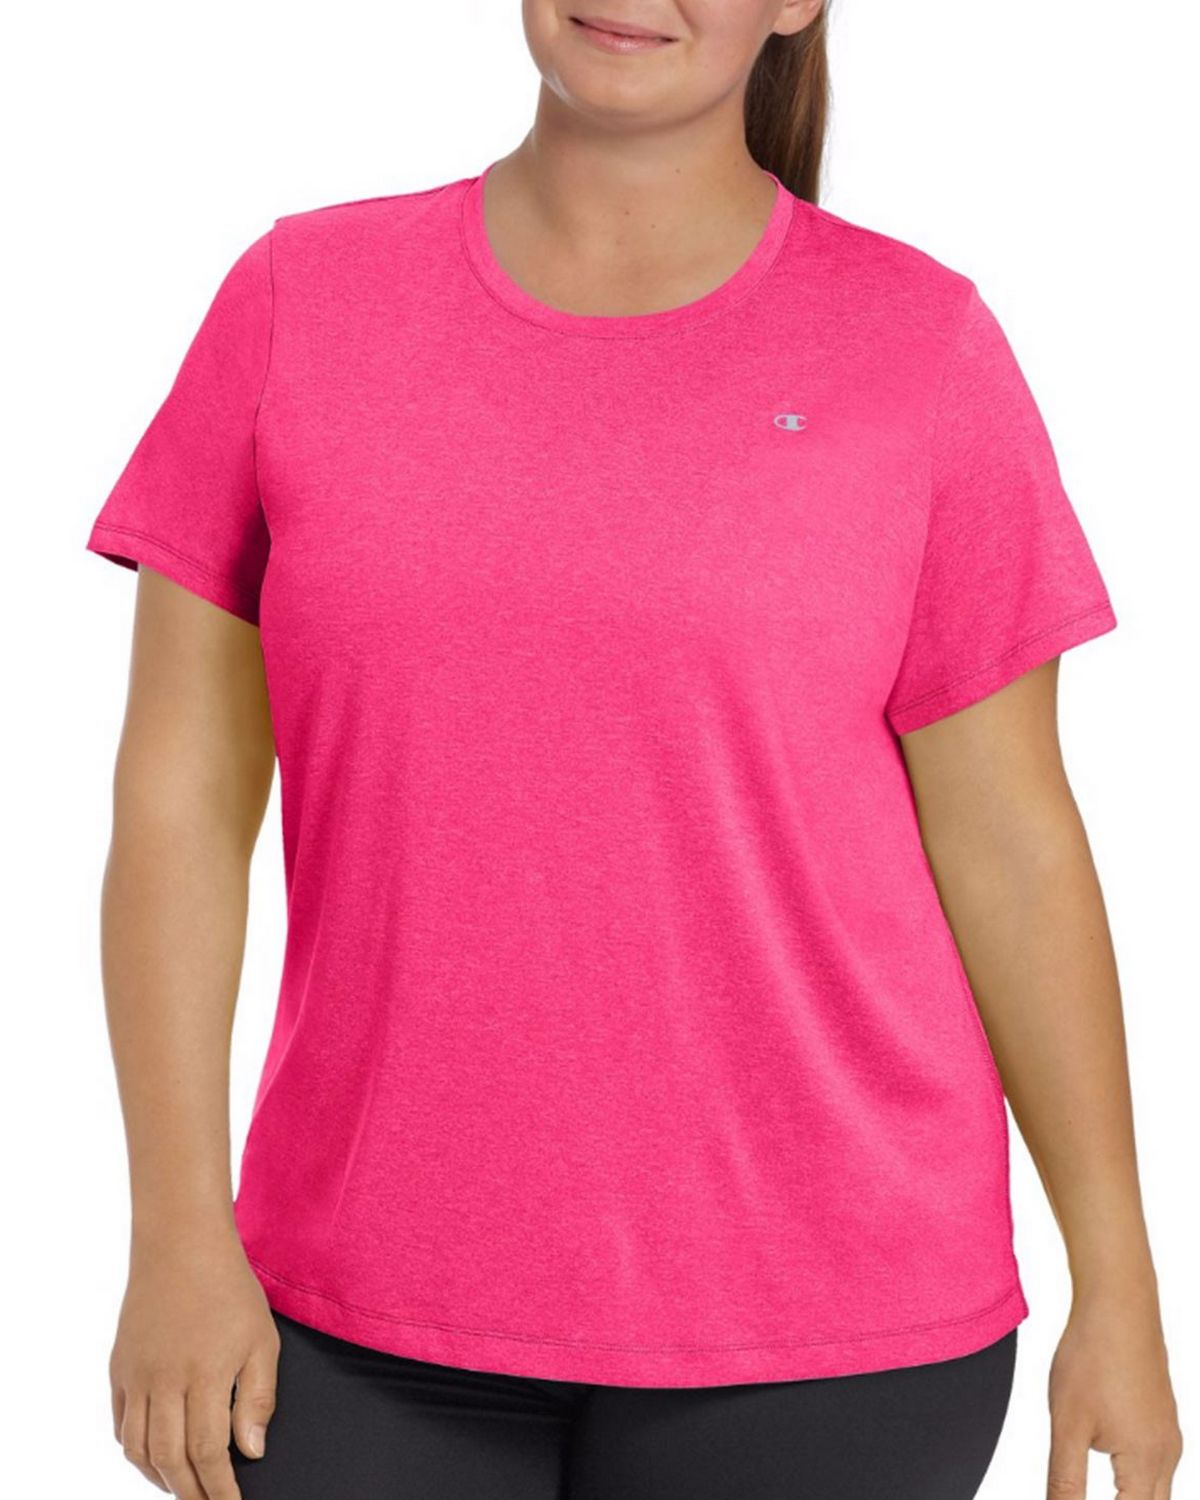 Champion QW0982 Womens Heather Tee - Forging Green Heather - 1X QW0982